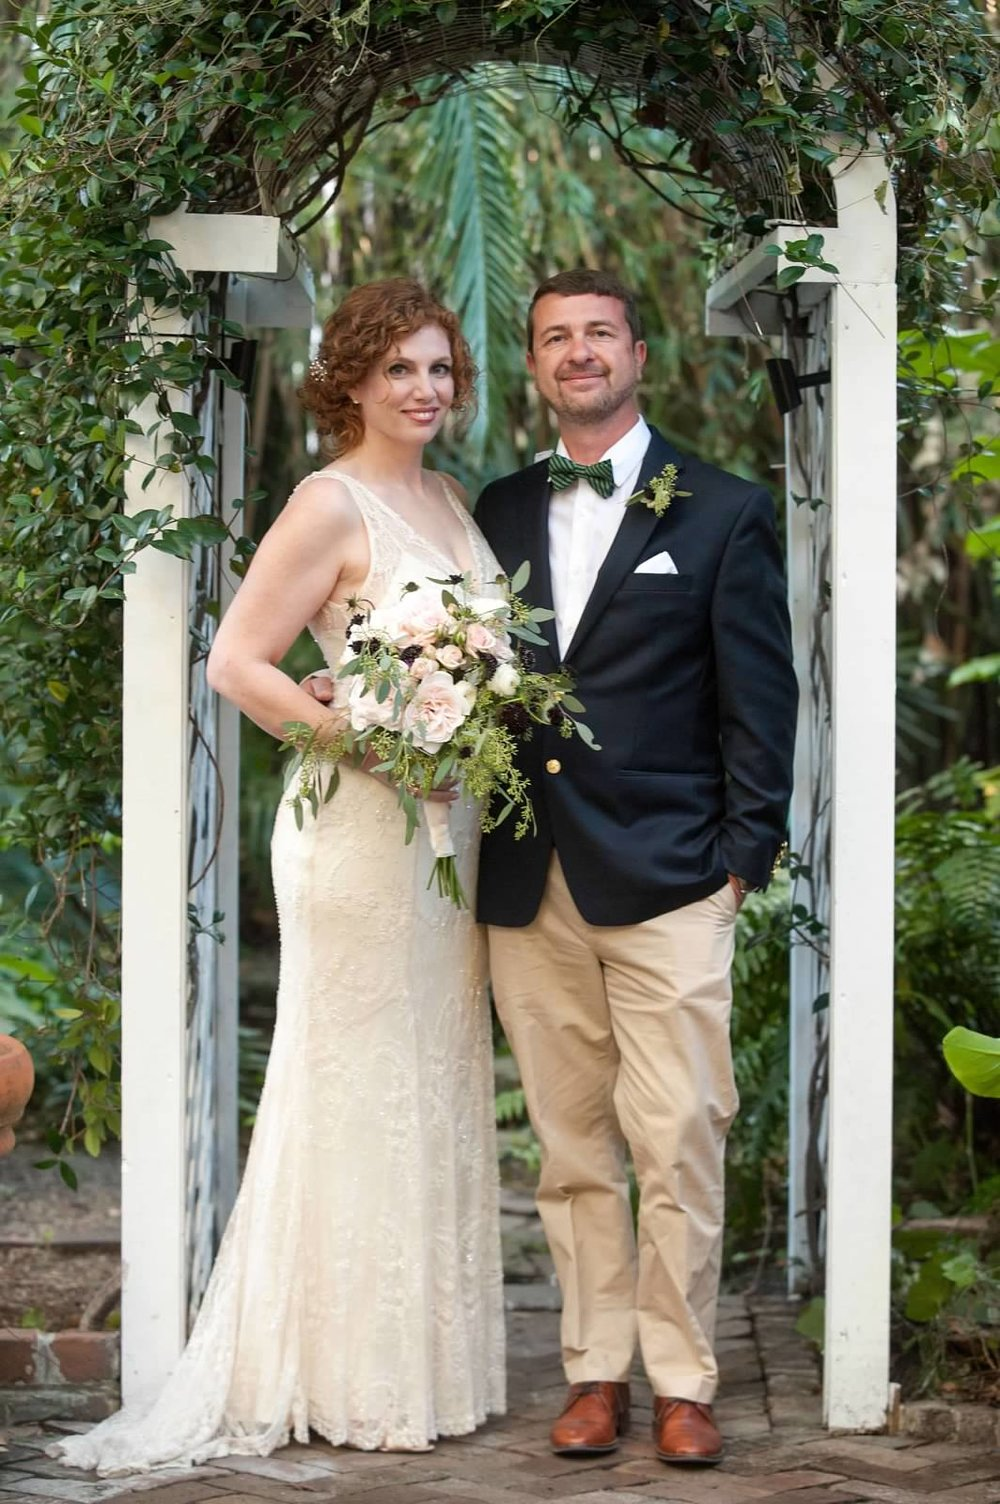 jeff-and-mollie-weddings-ivory-and-beau-bridal-boutique-savannah-intimate-wedding-savannah-elopement-rebecca-schoneveld-gemma-savannah-bridal-boutique-savannah-wedding-planner-savannah-wedding-florist-savannah-bridal-accessories-art-deco-bride-12.jpg